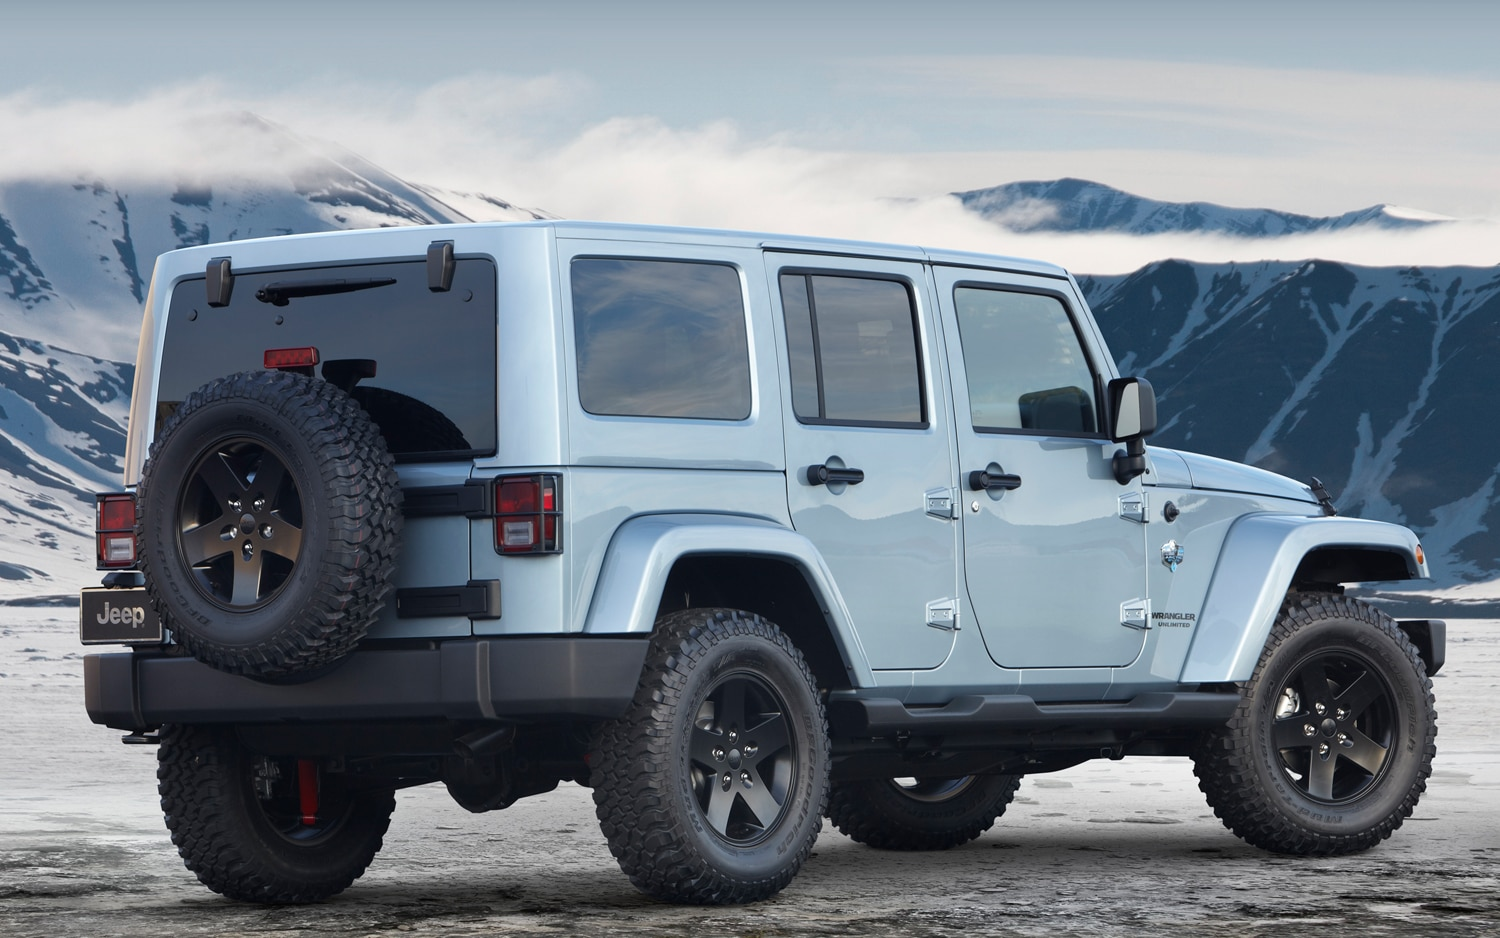 Jeep Liberty Mpg >> Jeep Brings Arctic Edition Package To U.S.-Spec 2012 ...